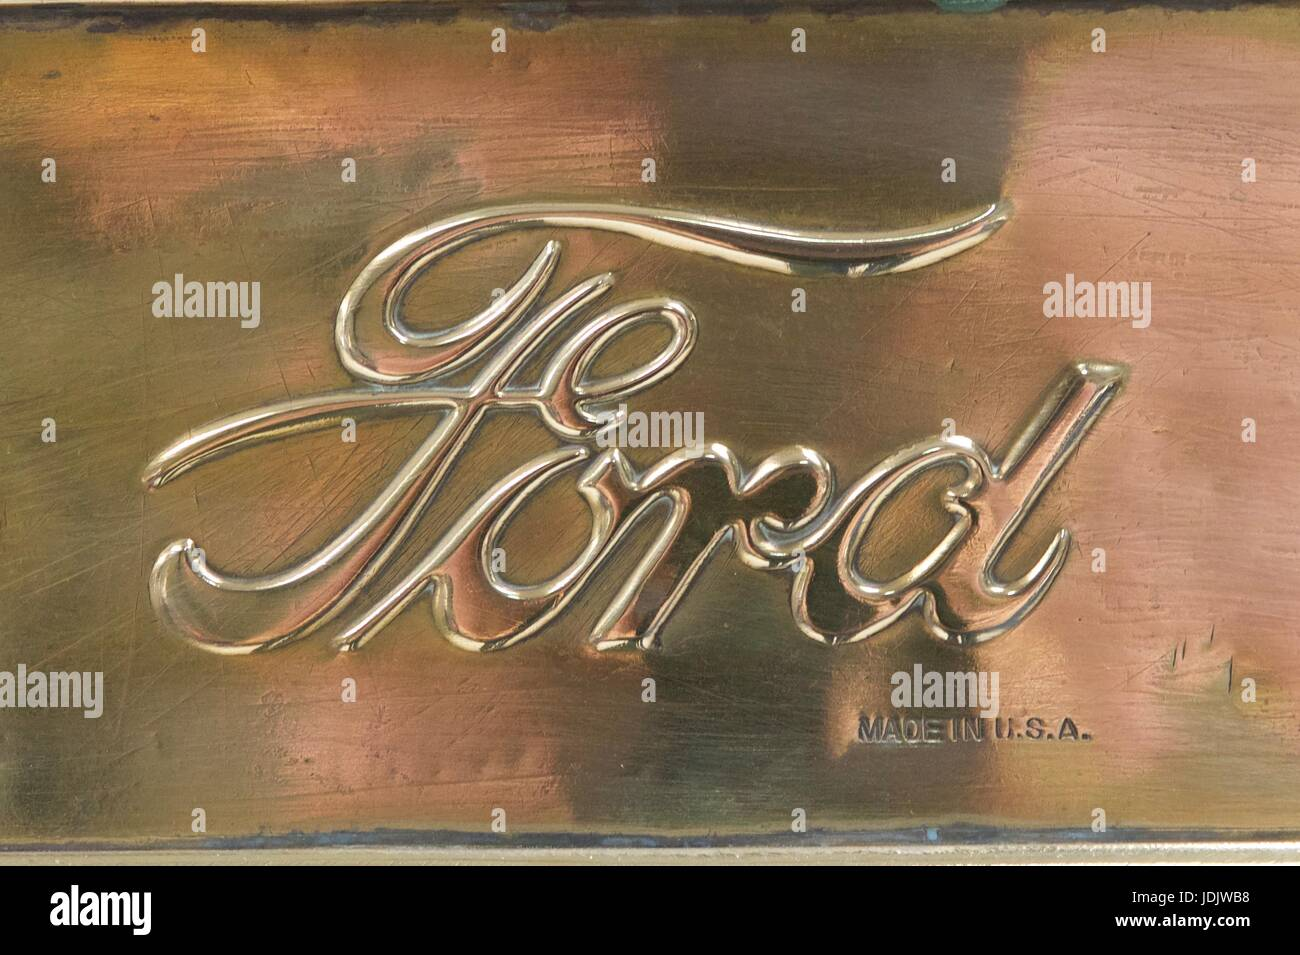 Ford logo started on a Model T brass radiator - Stock Image